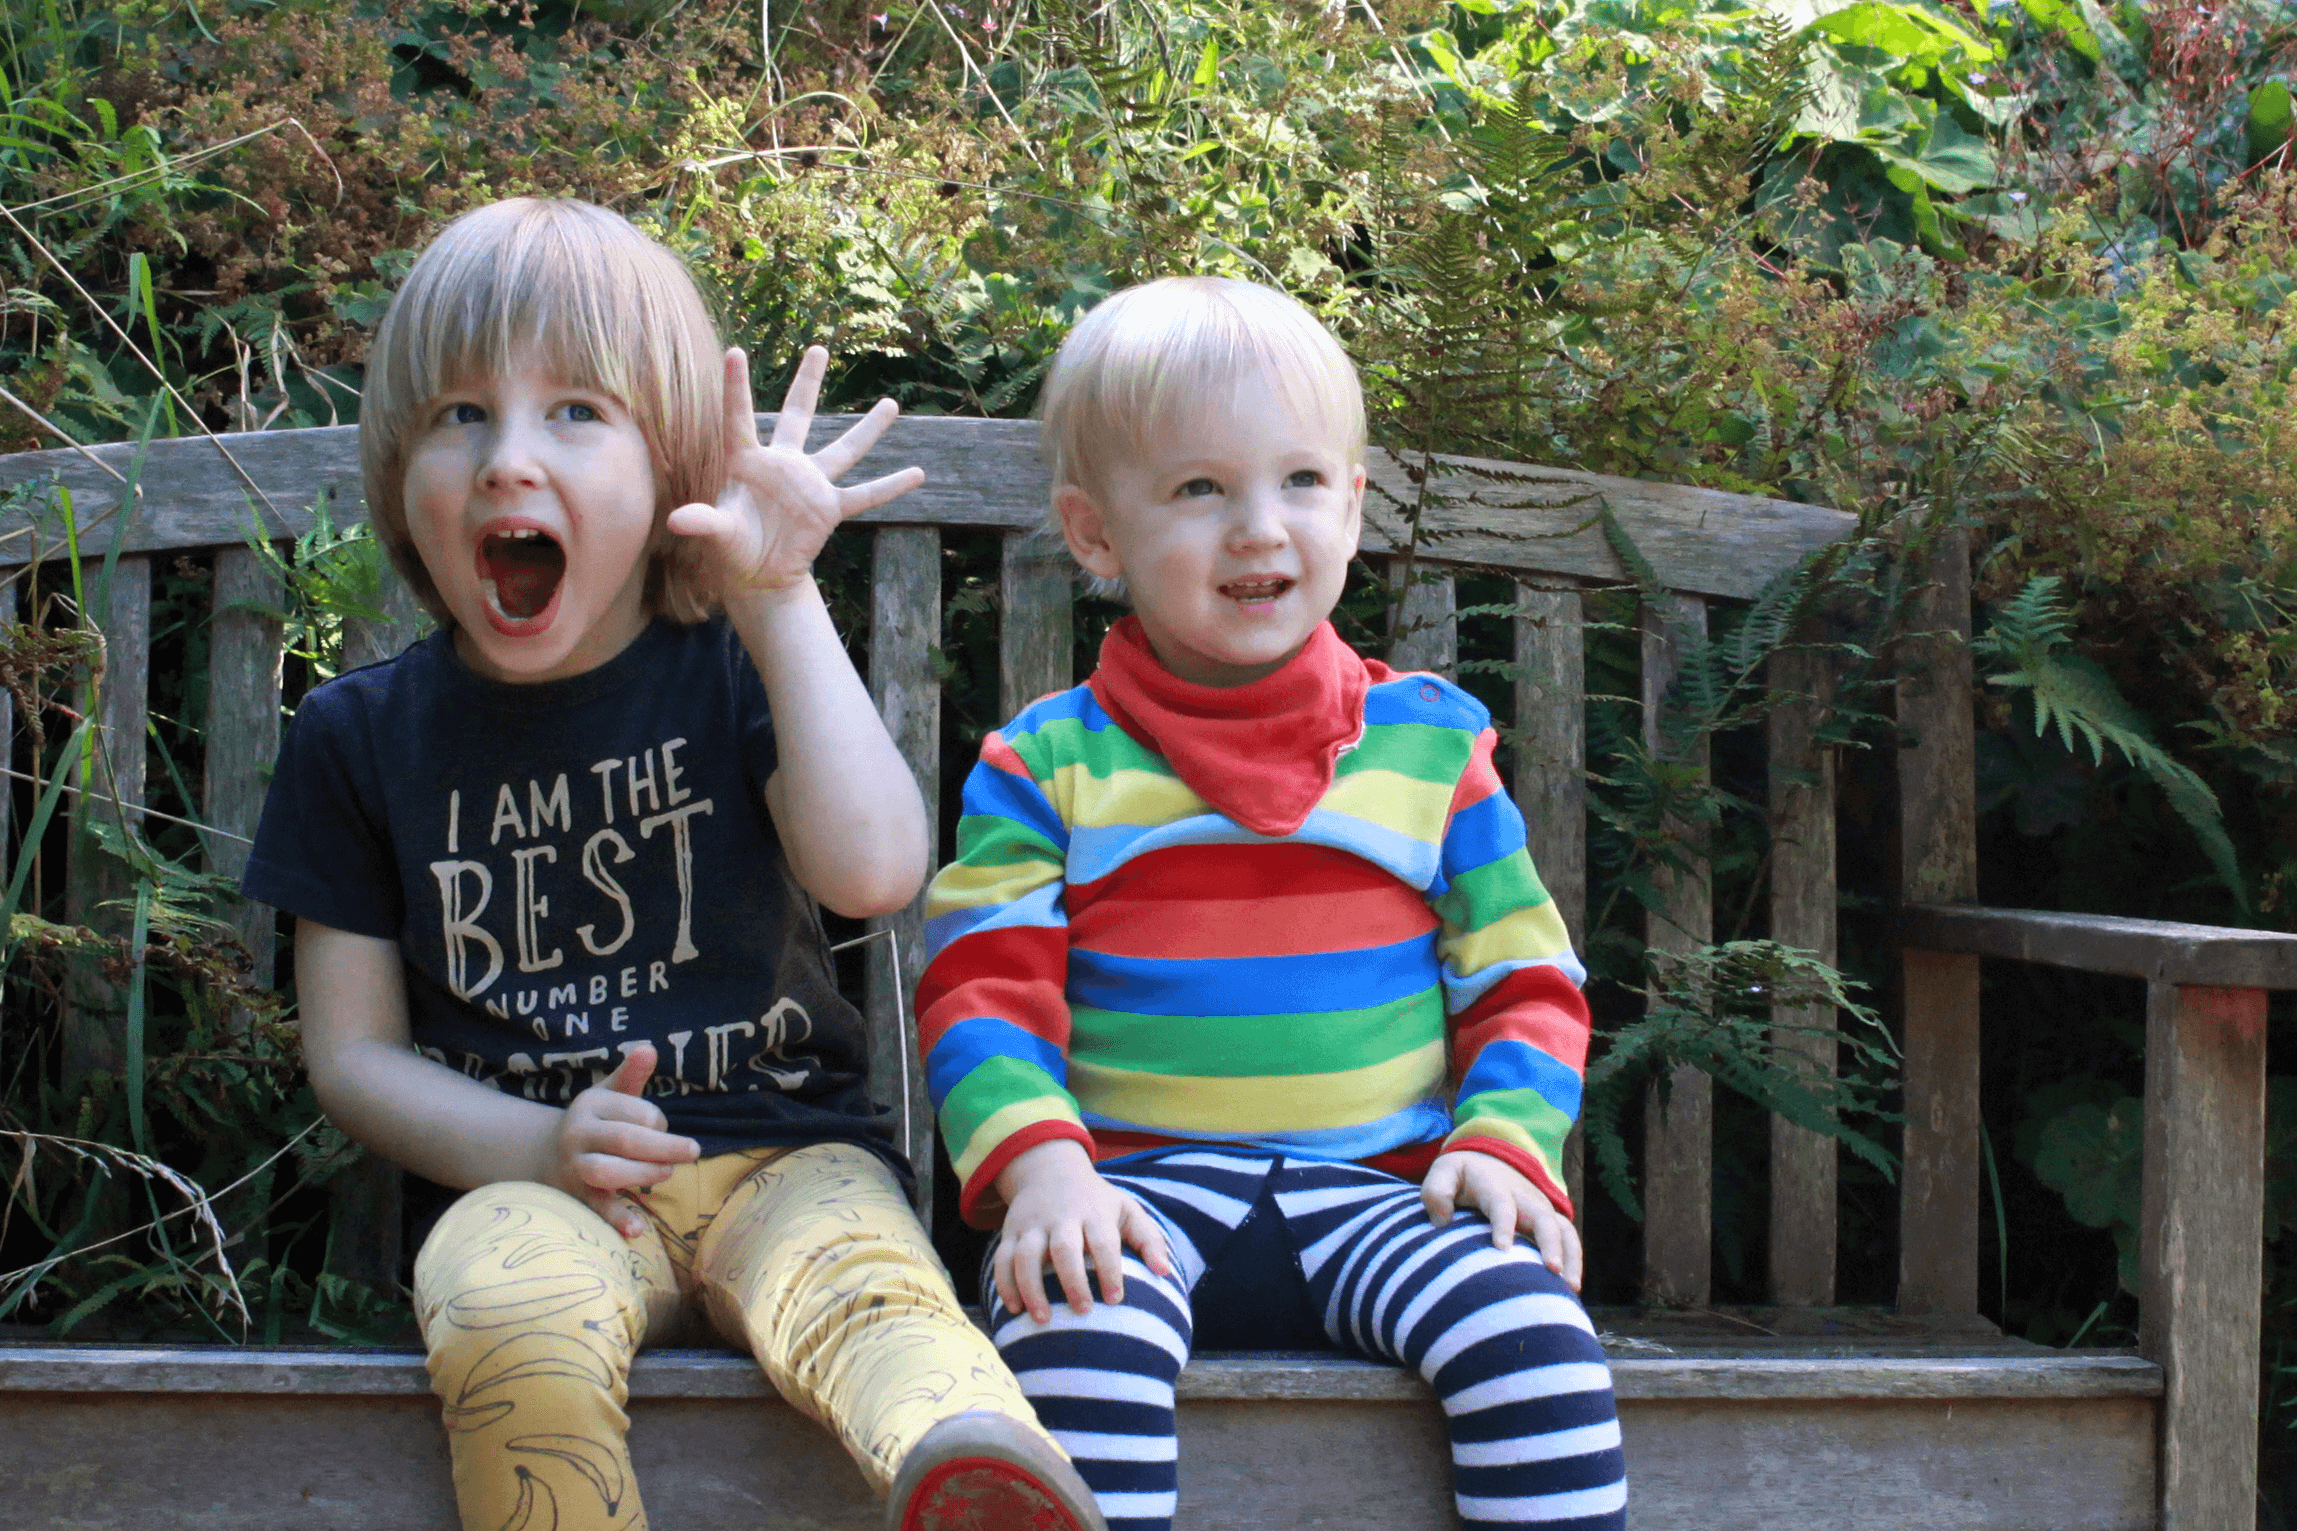 Toby and Gabe on the garden bench